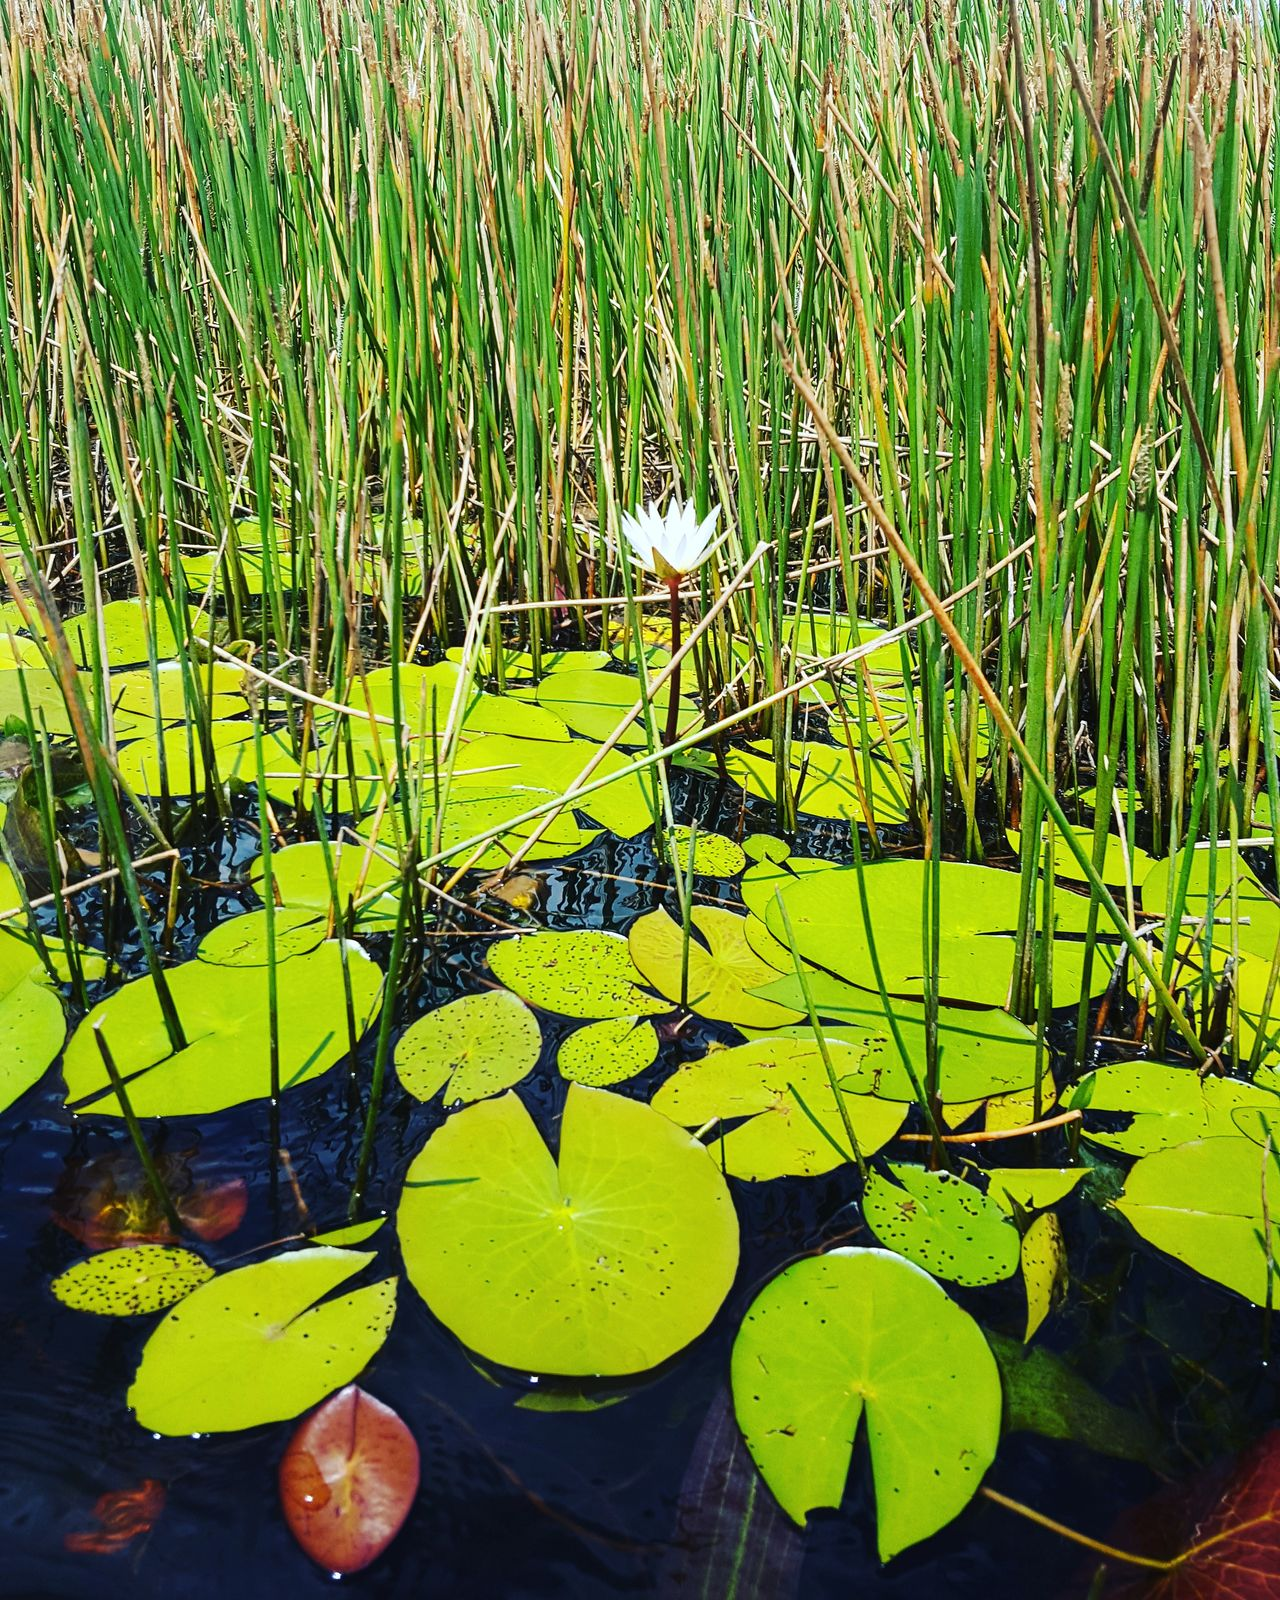 Water Green Color Nature Growth No People Outdoors Beauty In Nature Grass Close-up Day Single Flower Flower Lily Pad Lily Lily Flower Lily Pond Lilyum Lily Flowers Lilypad Lilypads